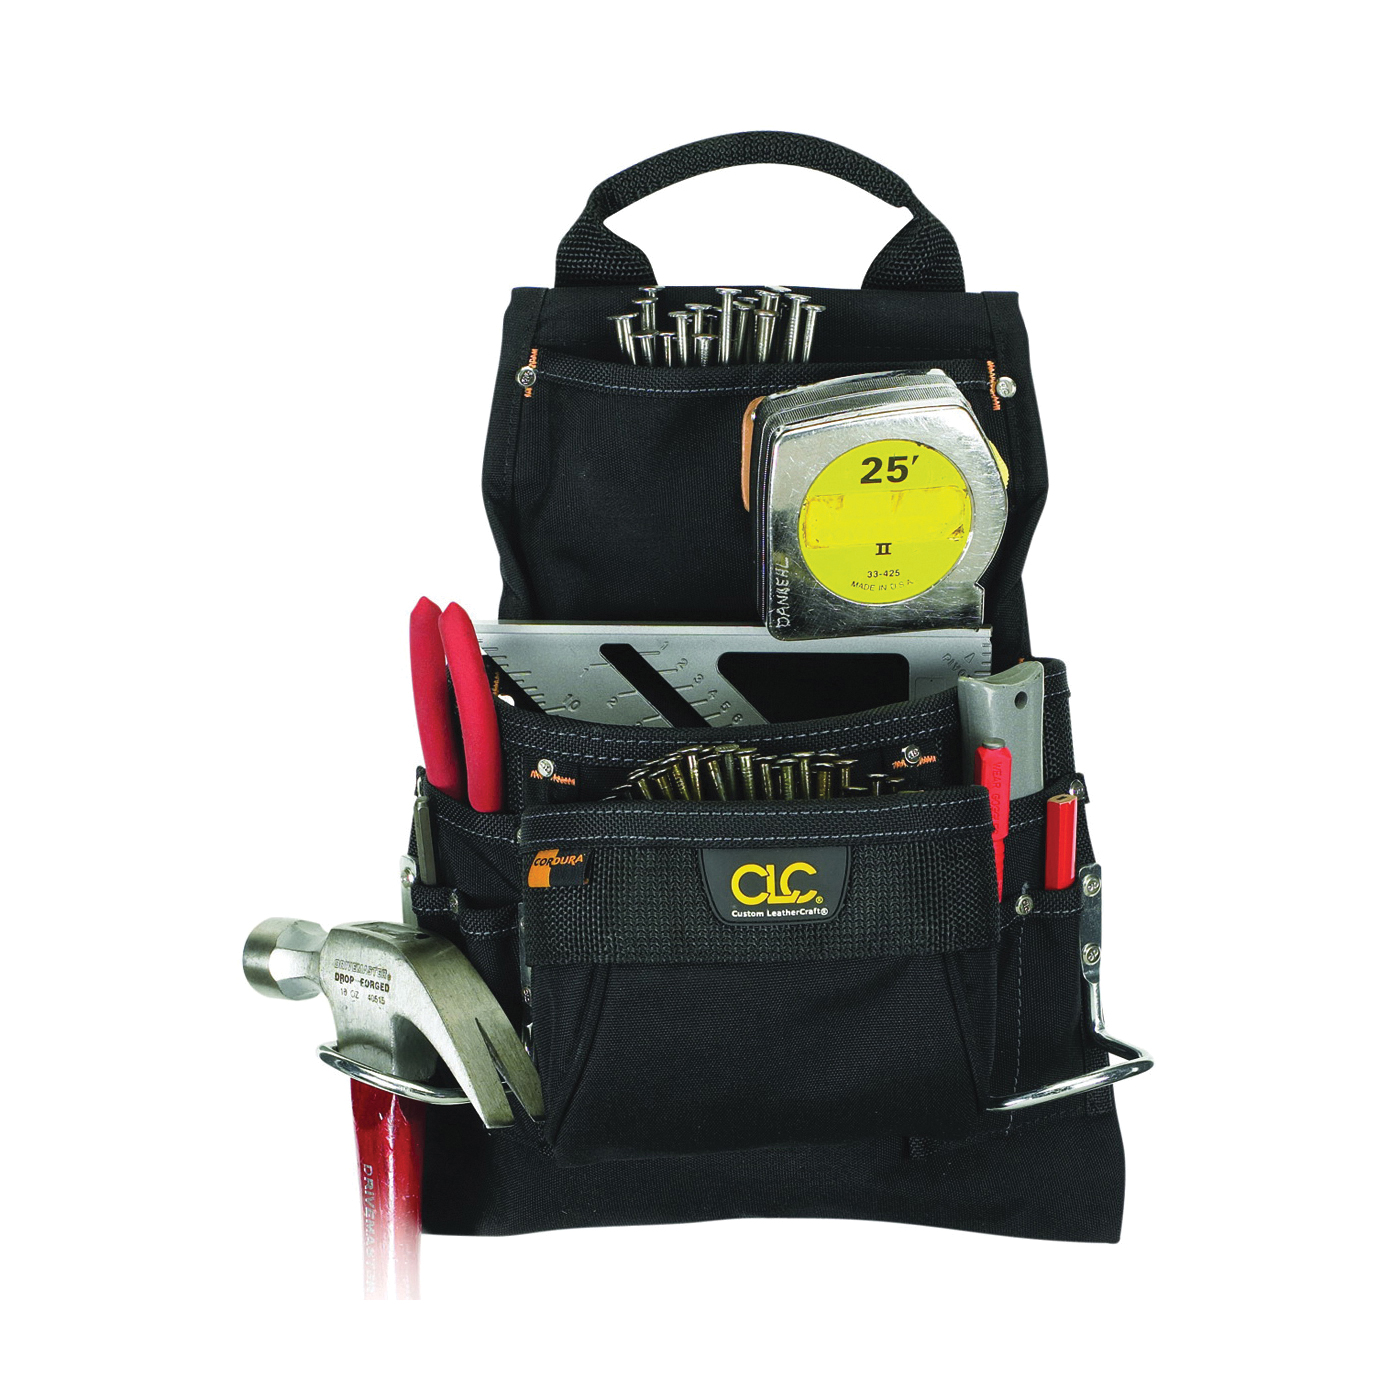 Picture of CLC Tool Works 5833 Nail/Tool Bag, 5 in W, 15.2 in H, 9 -Pocket, Polyester, Black